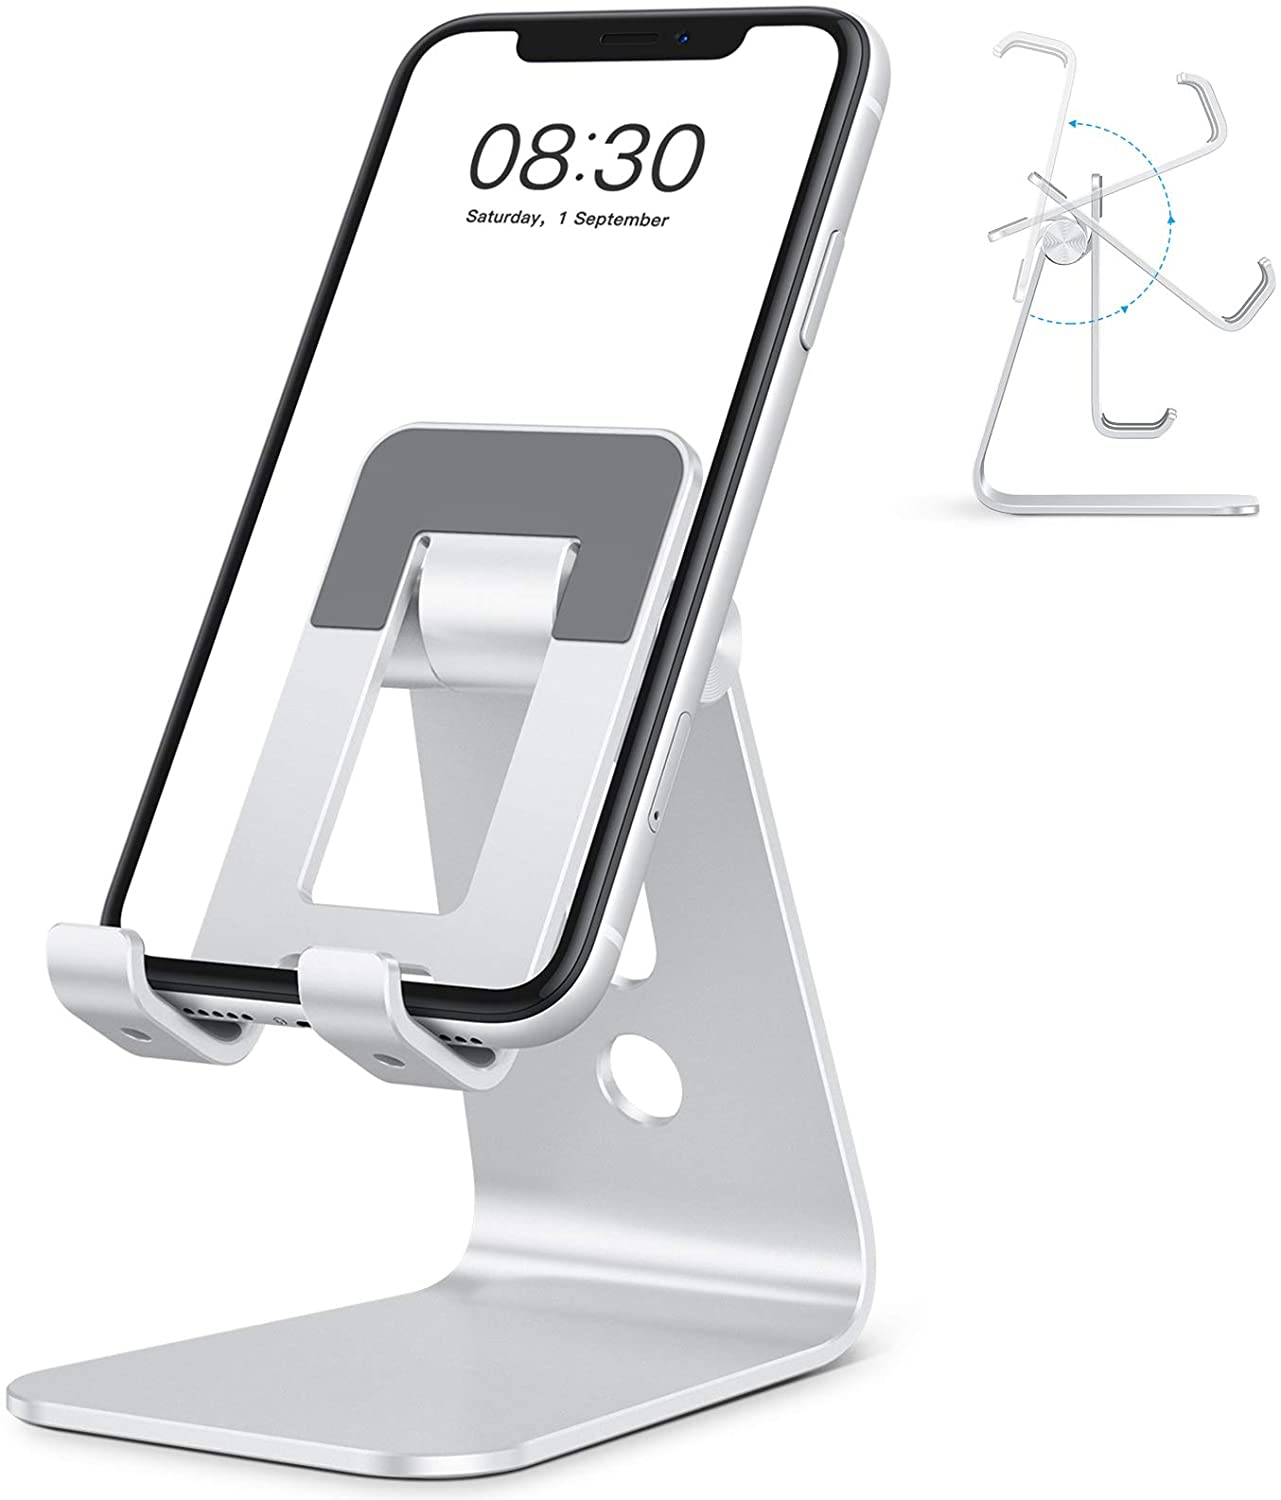 OMOTON C3 Cell Phone Stand